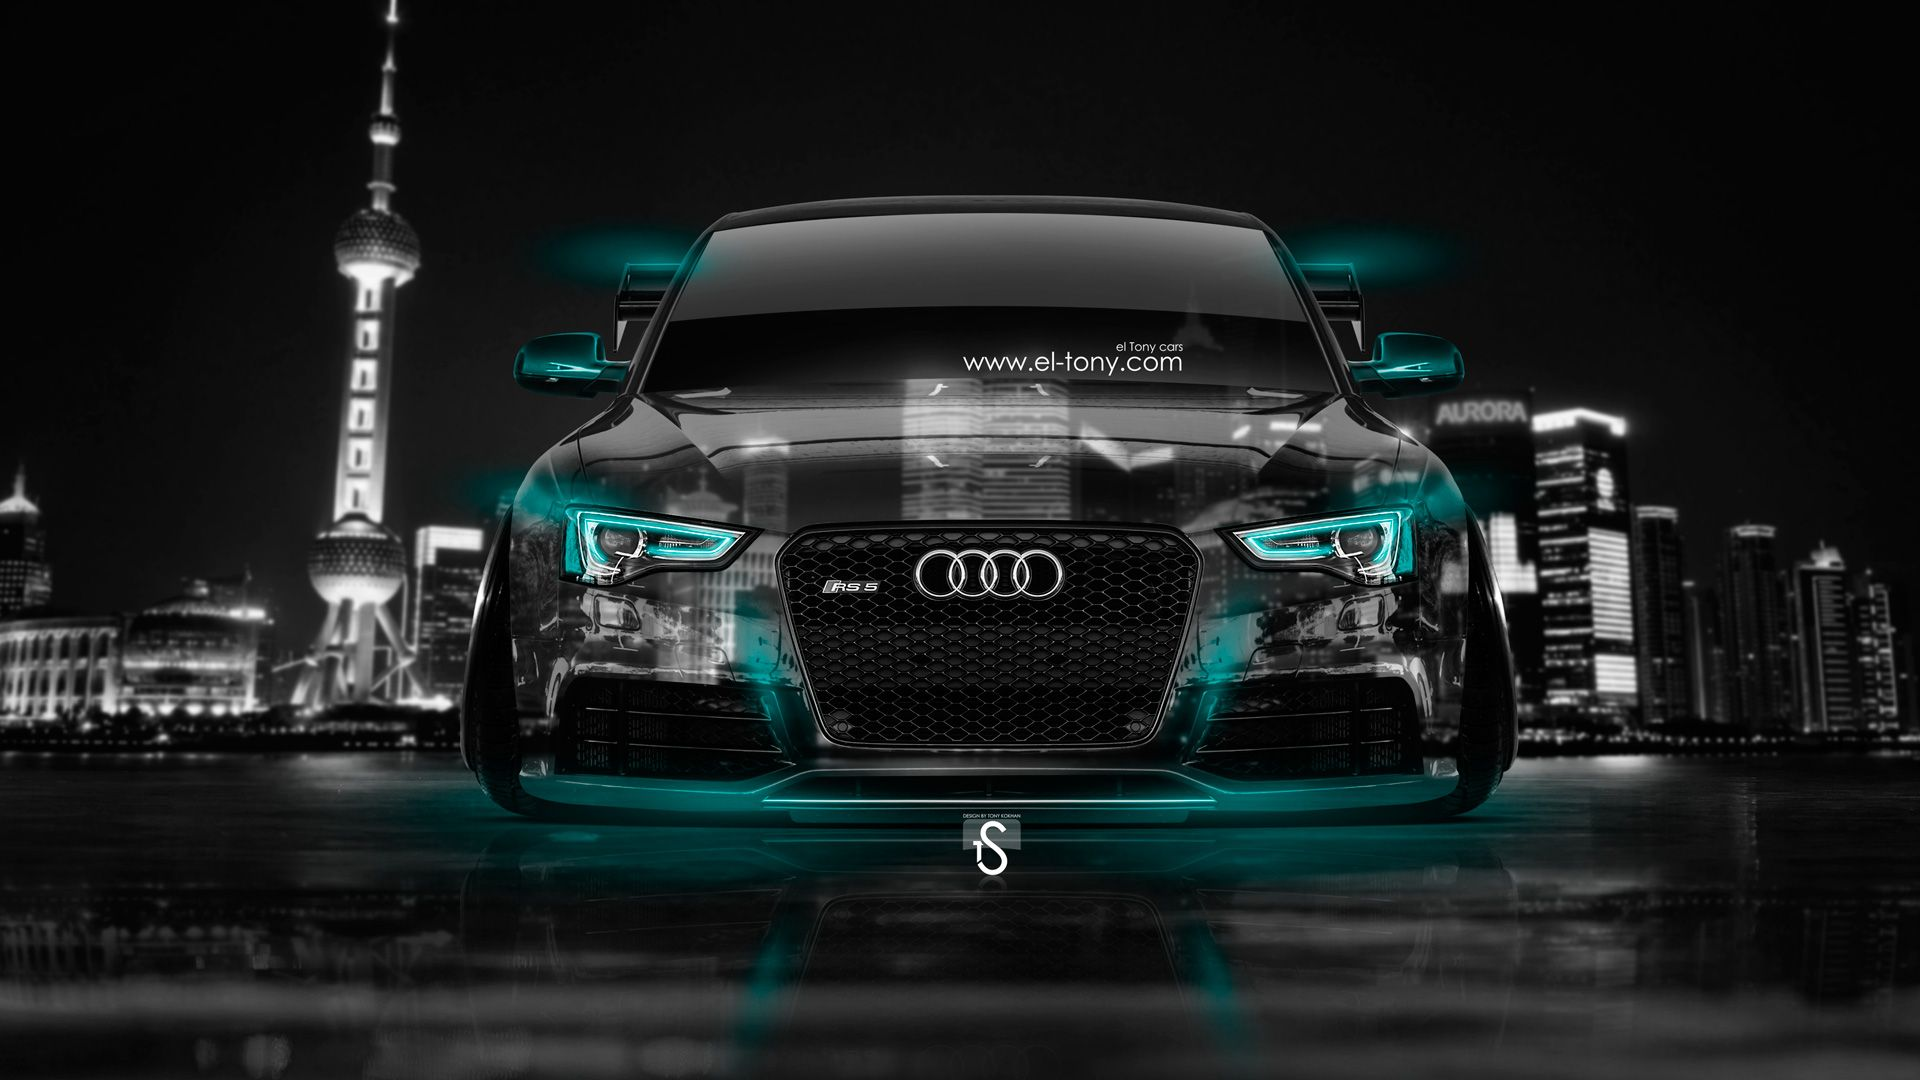 Etonnant Audi Tuning Front Crystal City Car 2014   Audi Tuning Crystal City Car  Altezza JDM Front Crystal City Car Lancer Evolution X Tuning Front Crystal  City Car